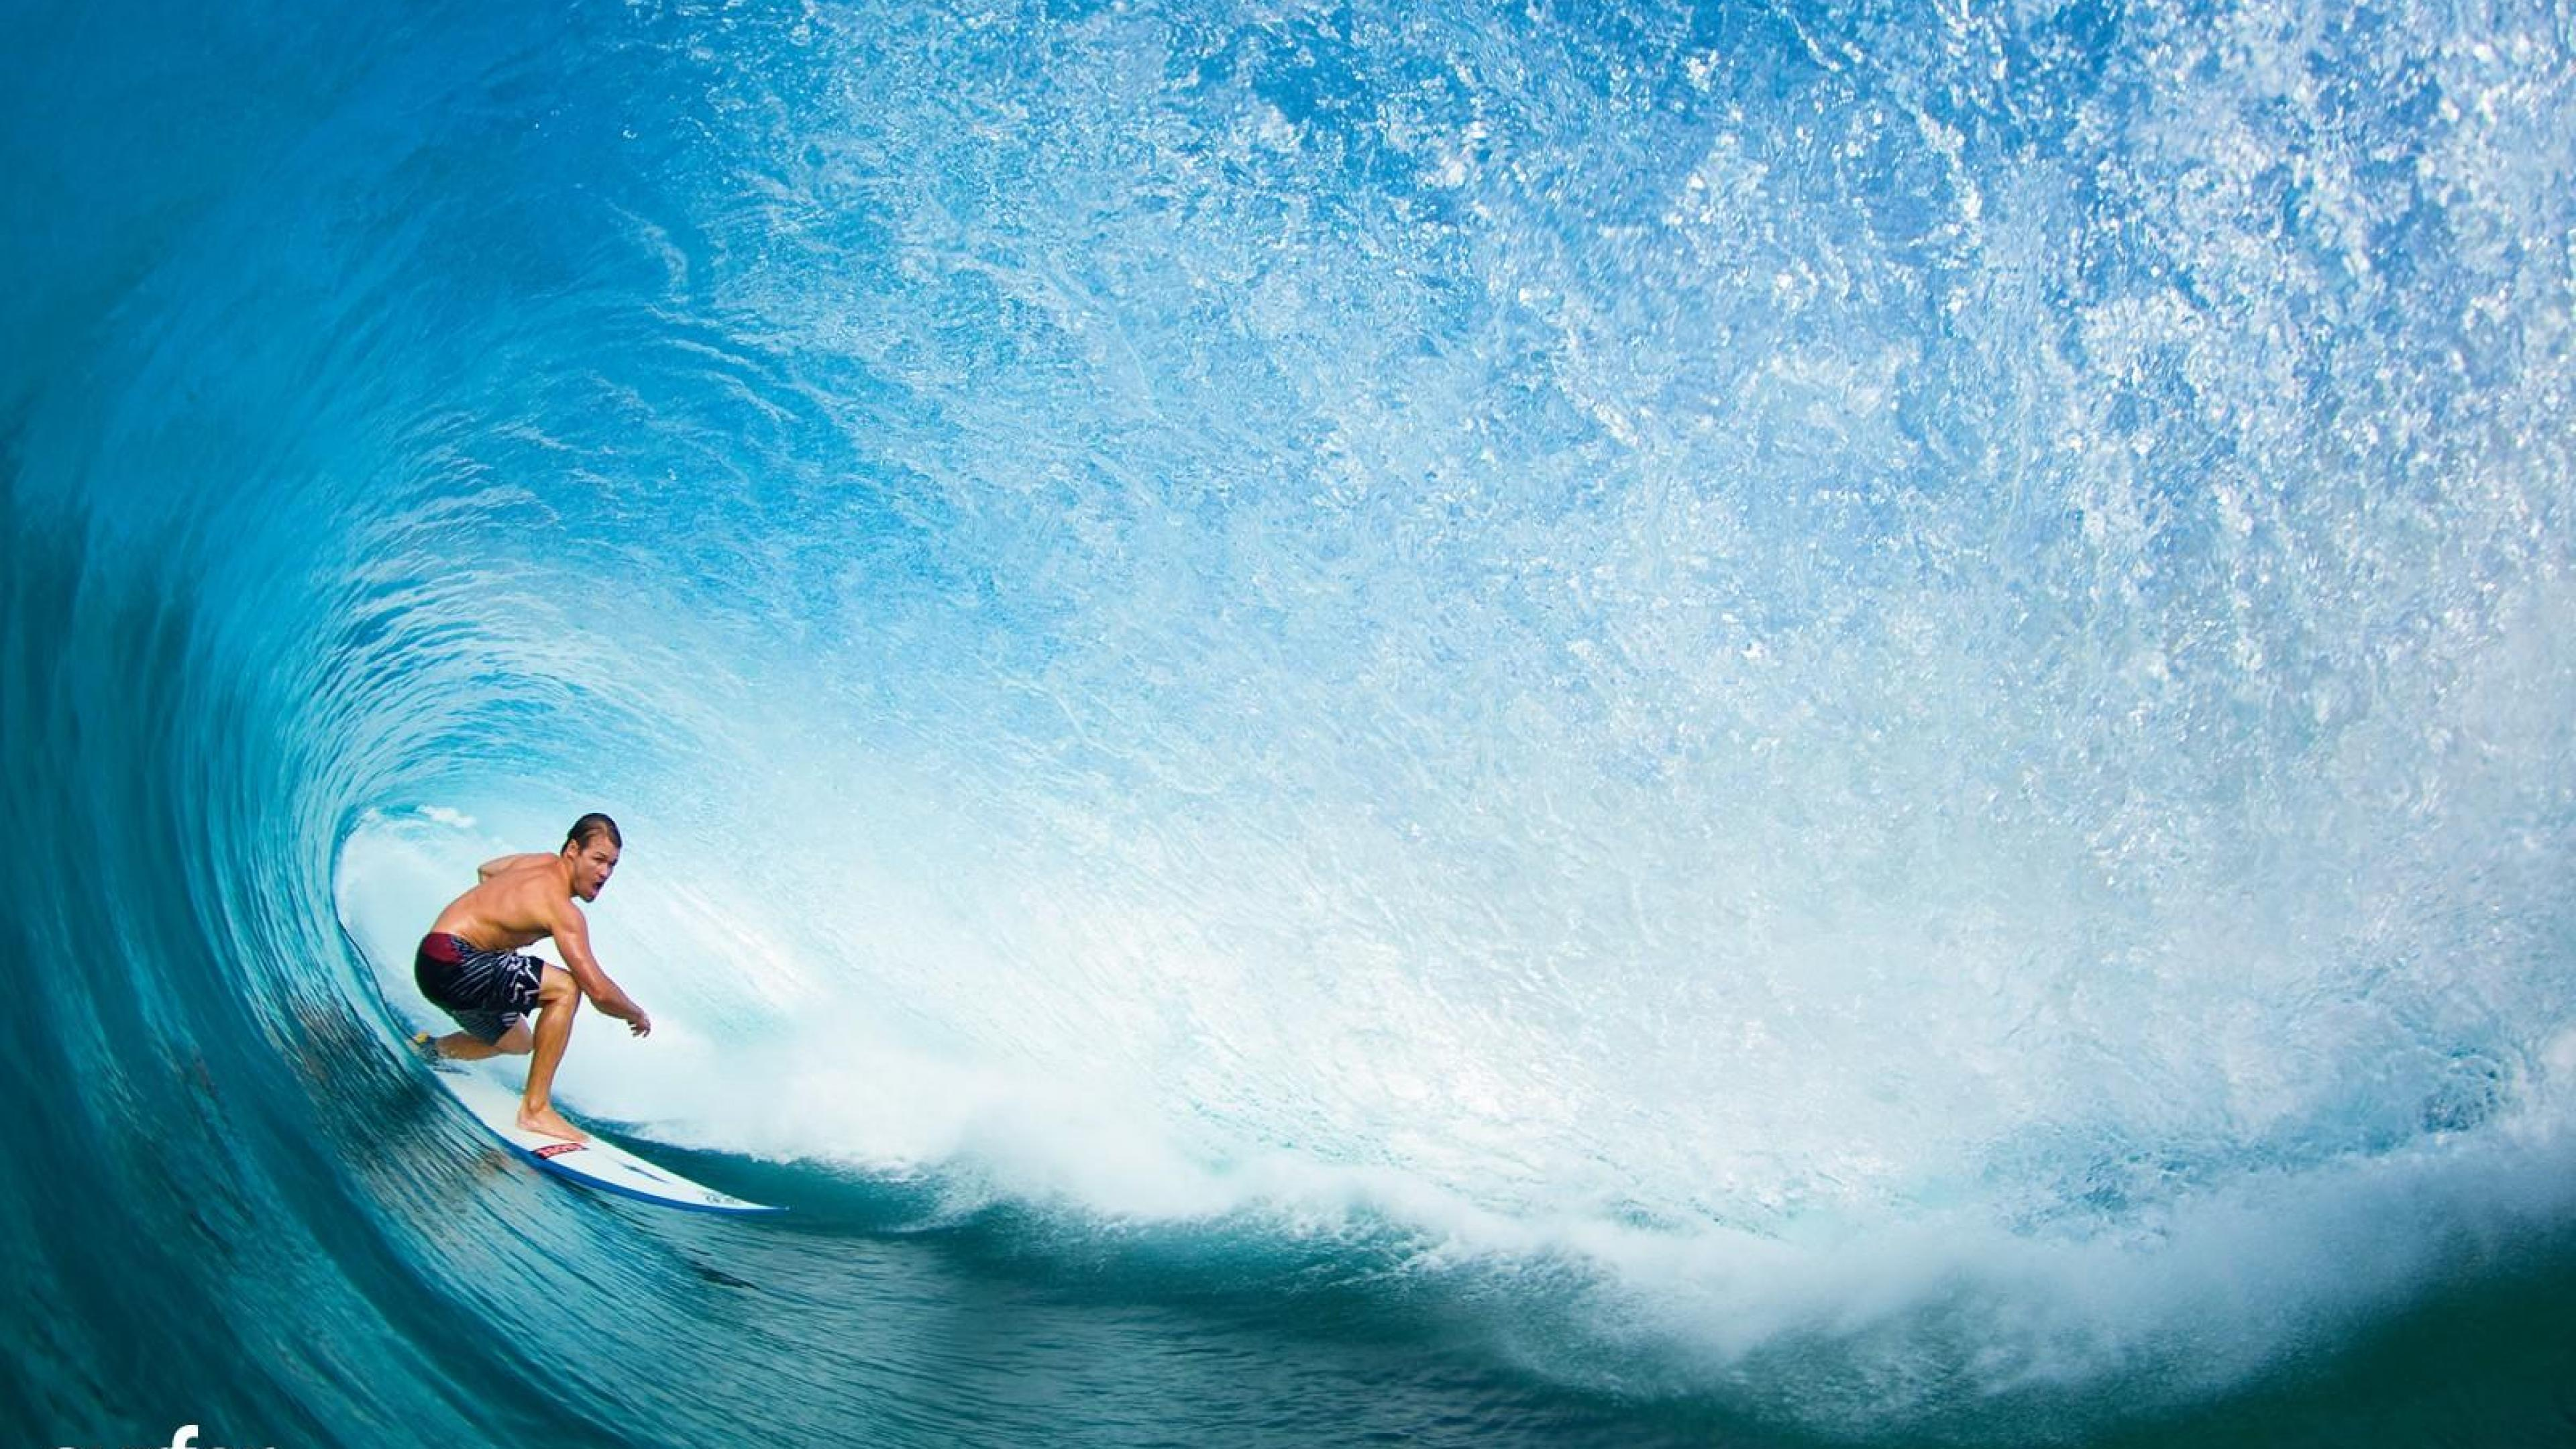 surfing wallpaper full hd - photo #36